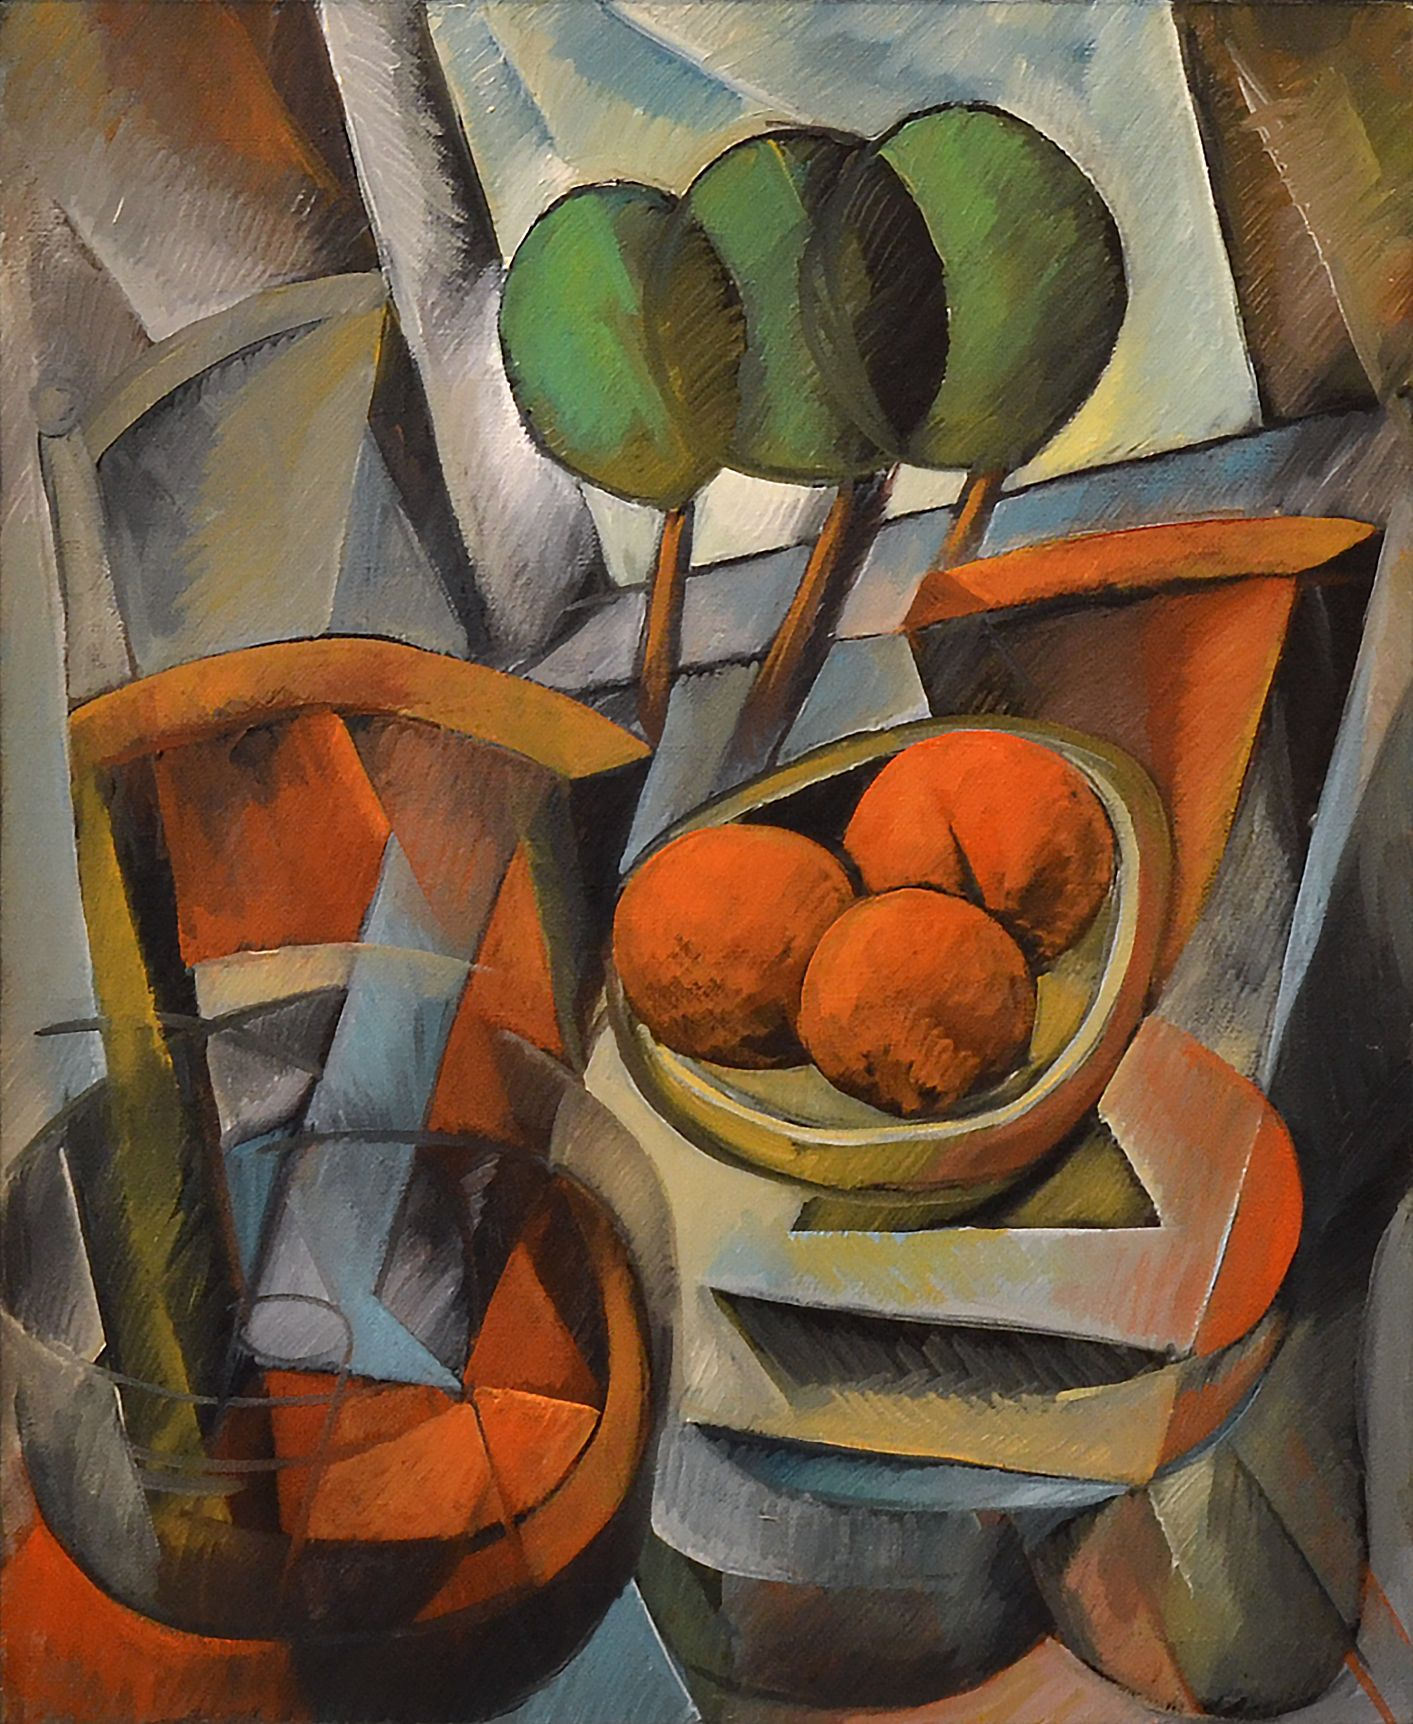 Yuroz - Trees and Pomegranates, 2015; Painting; Original oil on canvas; Signed; Cubism; Contemporary Art; Off The Wall Gallery Houston.